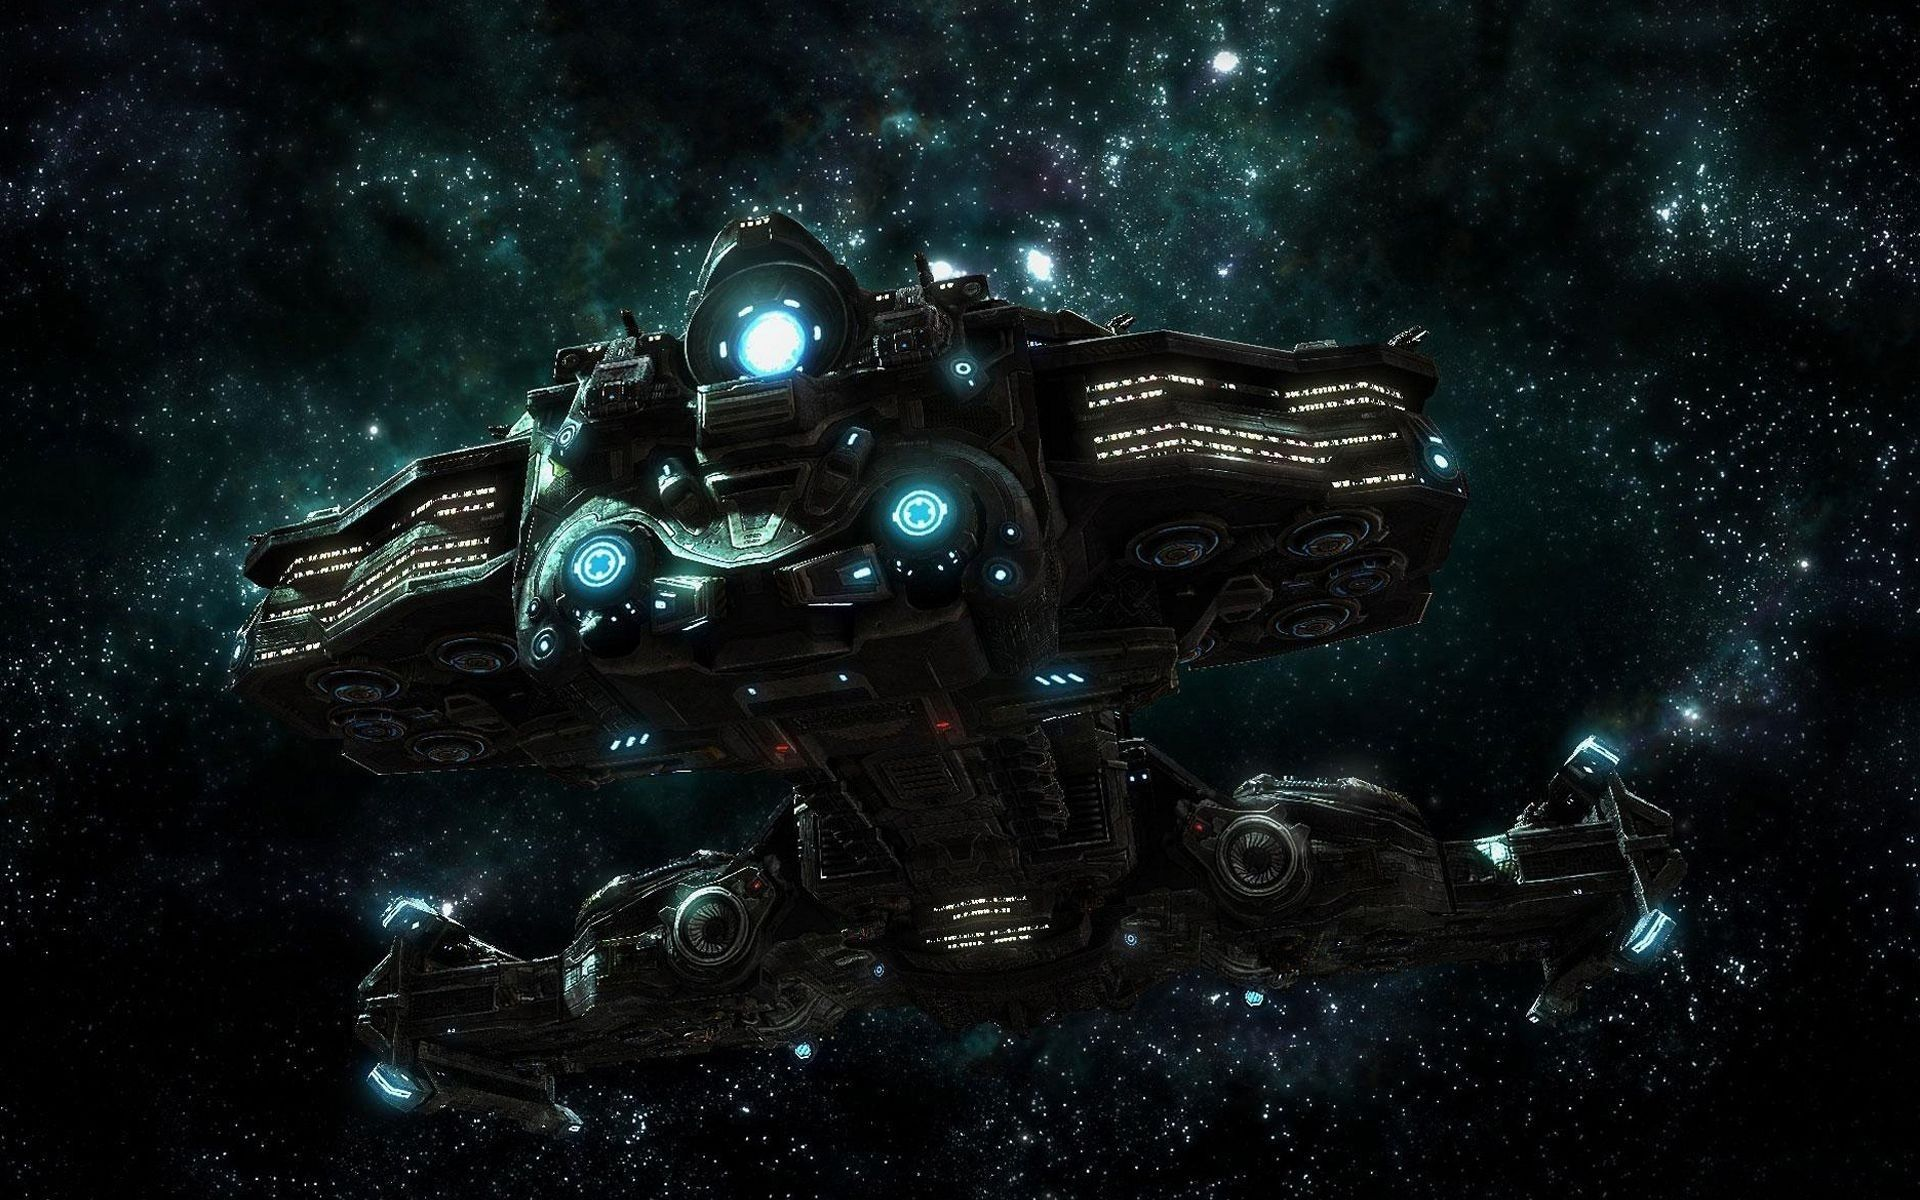 space ship images